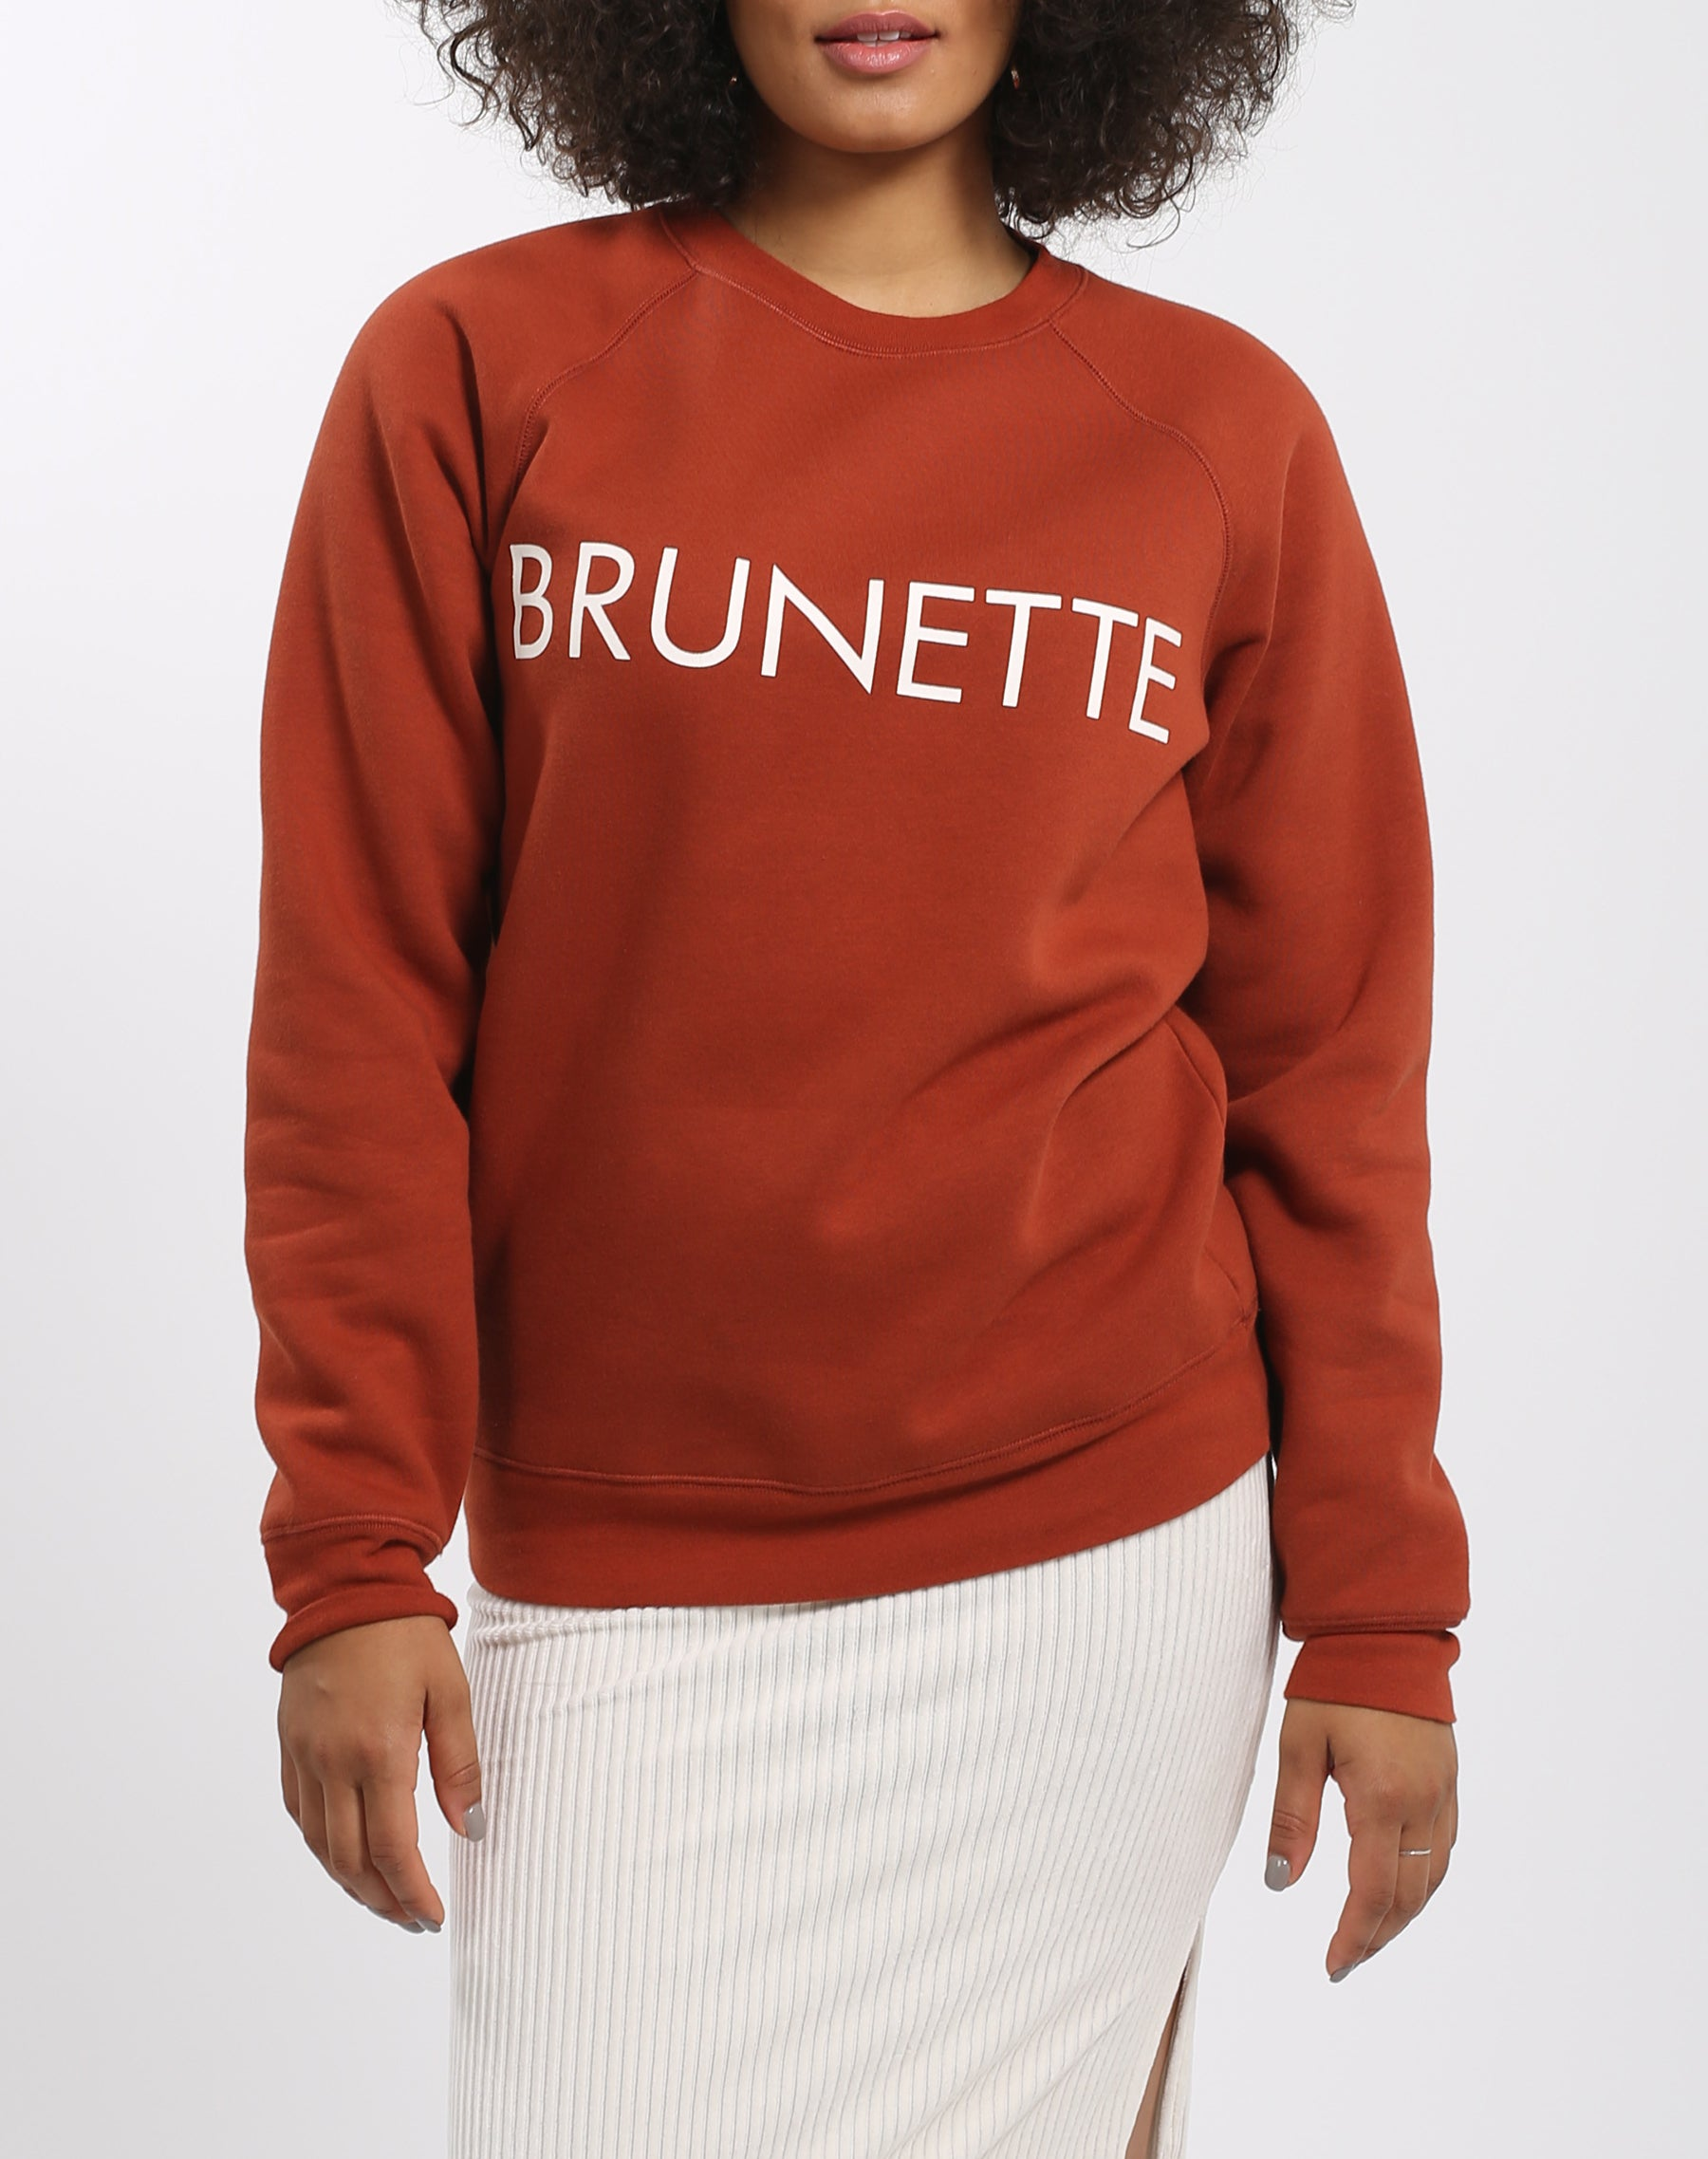 Photo 2 of the Brunette classic crew neck sweatshirt in rust by Brunette the Label.